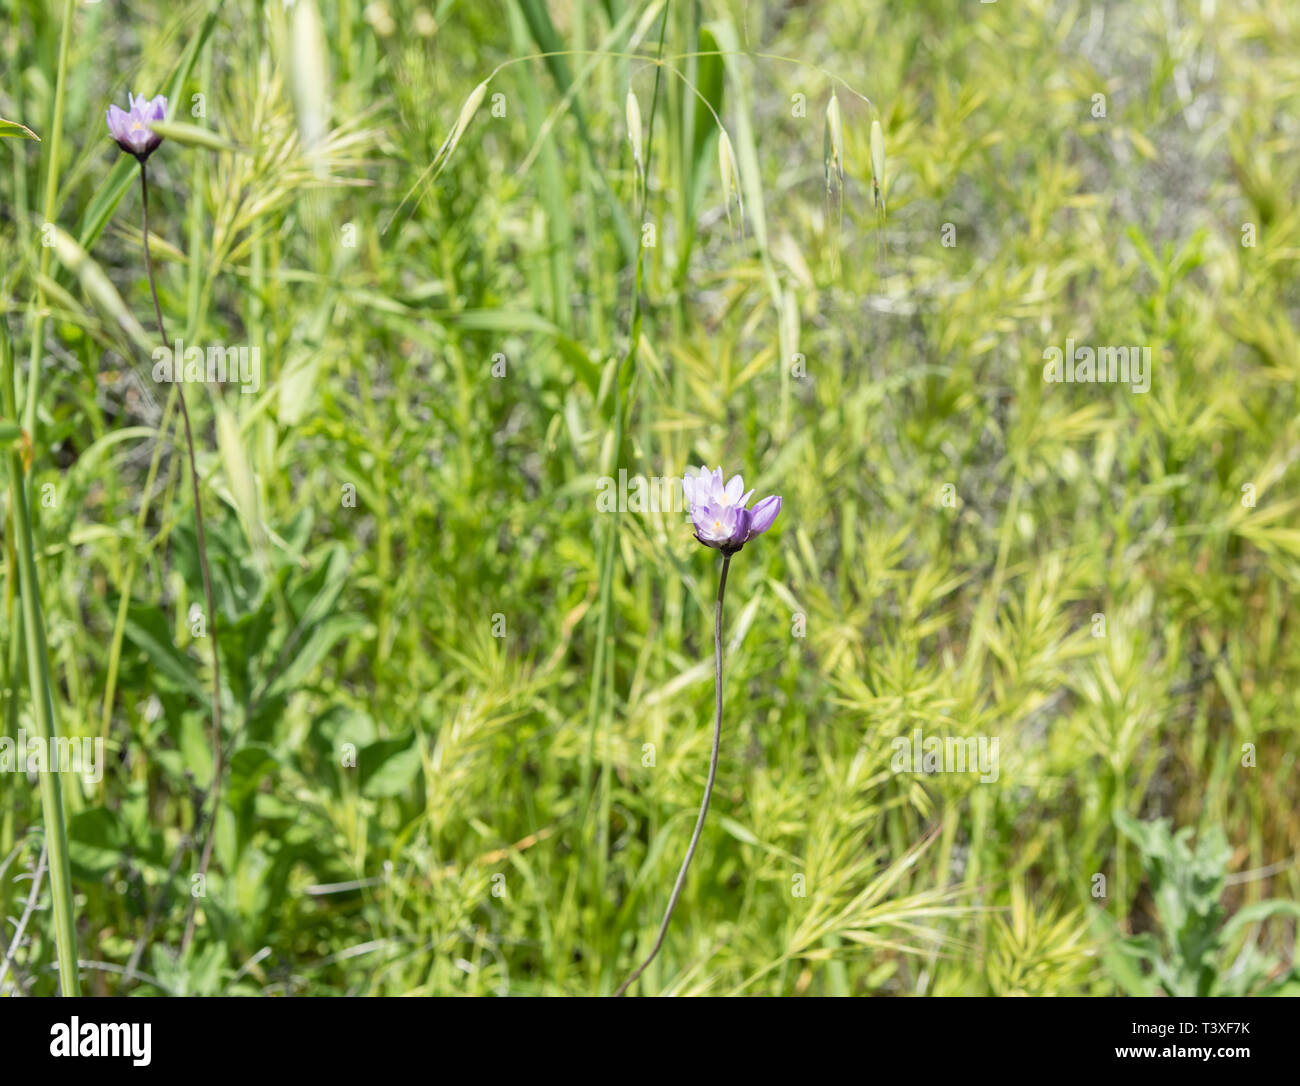 Beautiful wild flowers - a part of the superbloom phenomena in the Walker Canyon mountain range near Lake Elsinore, Southern California - Stock Image